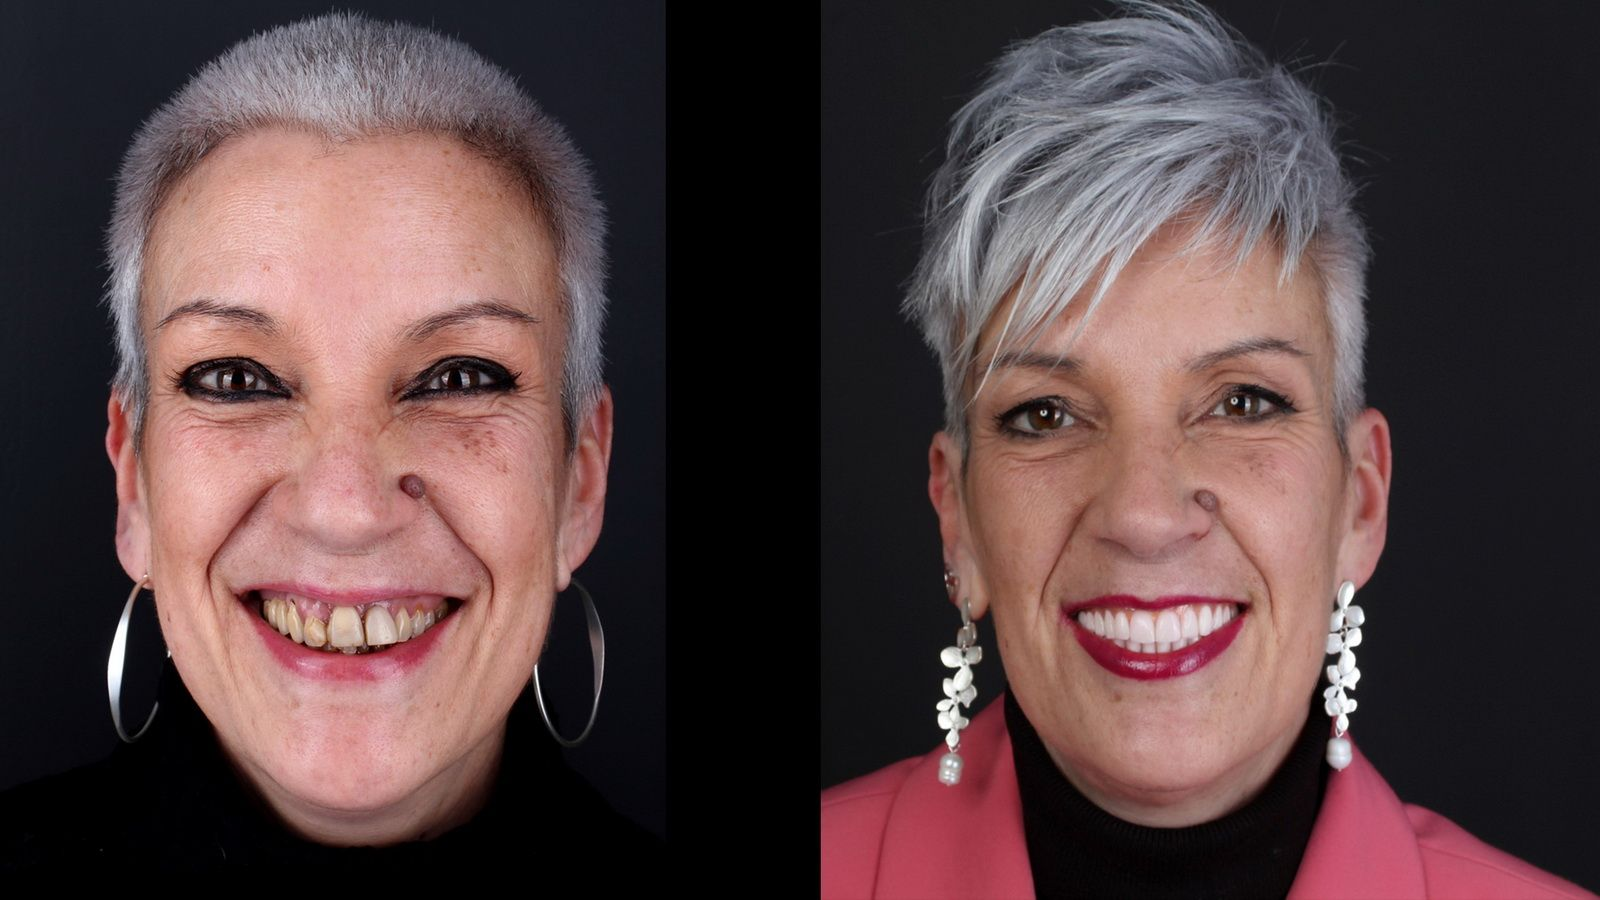 Dental implant treatment at the Padrós dental clinic. Your dentist in Barcelona